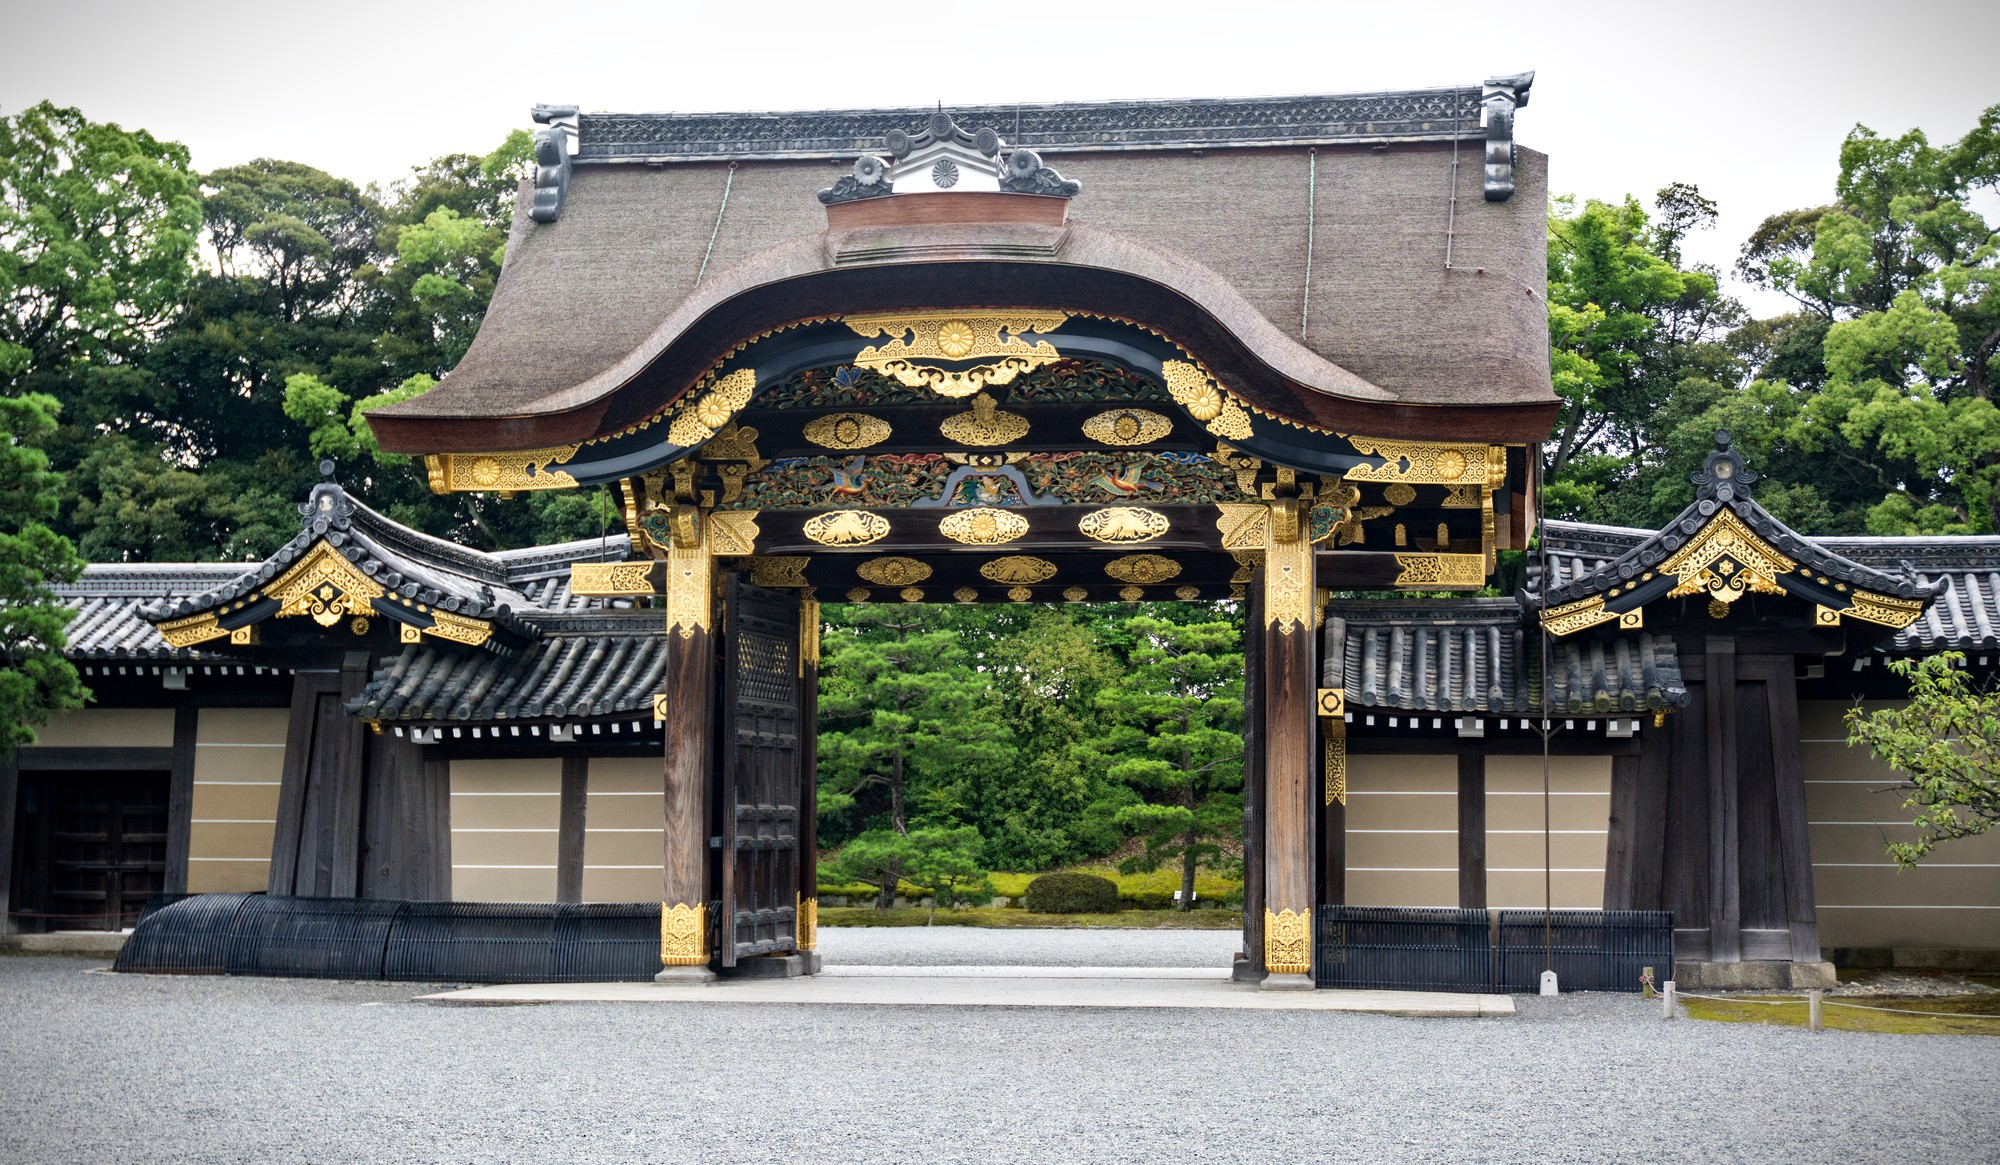 Karamon main gate at Nijo Castle, Kyoto. Credit: LizardJedi. Licensed under CC. Original modified.